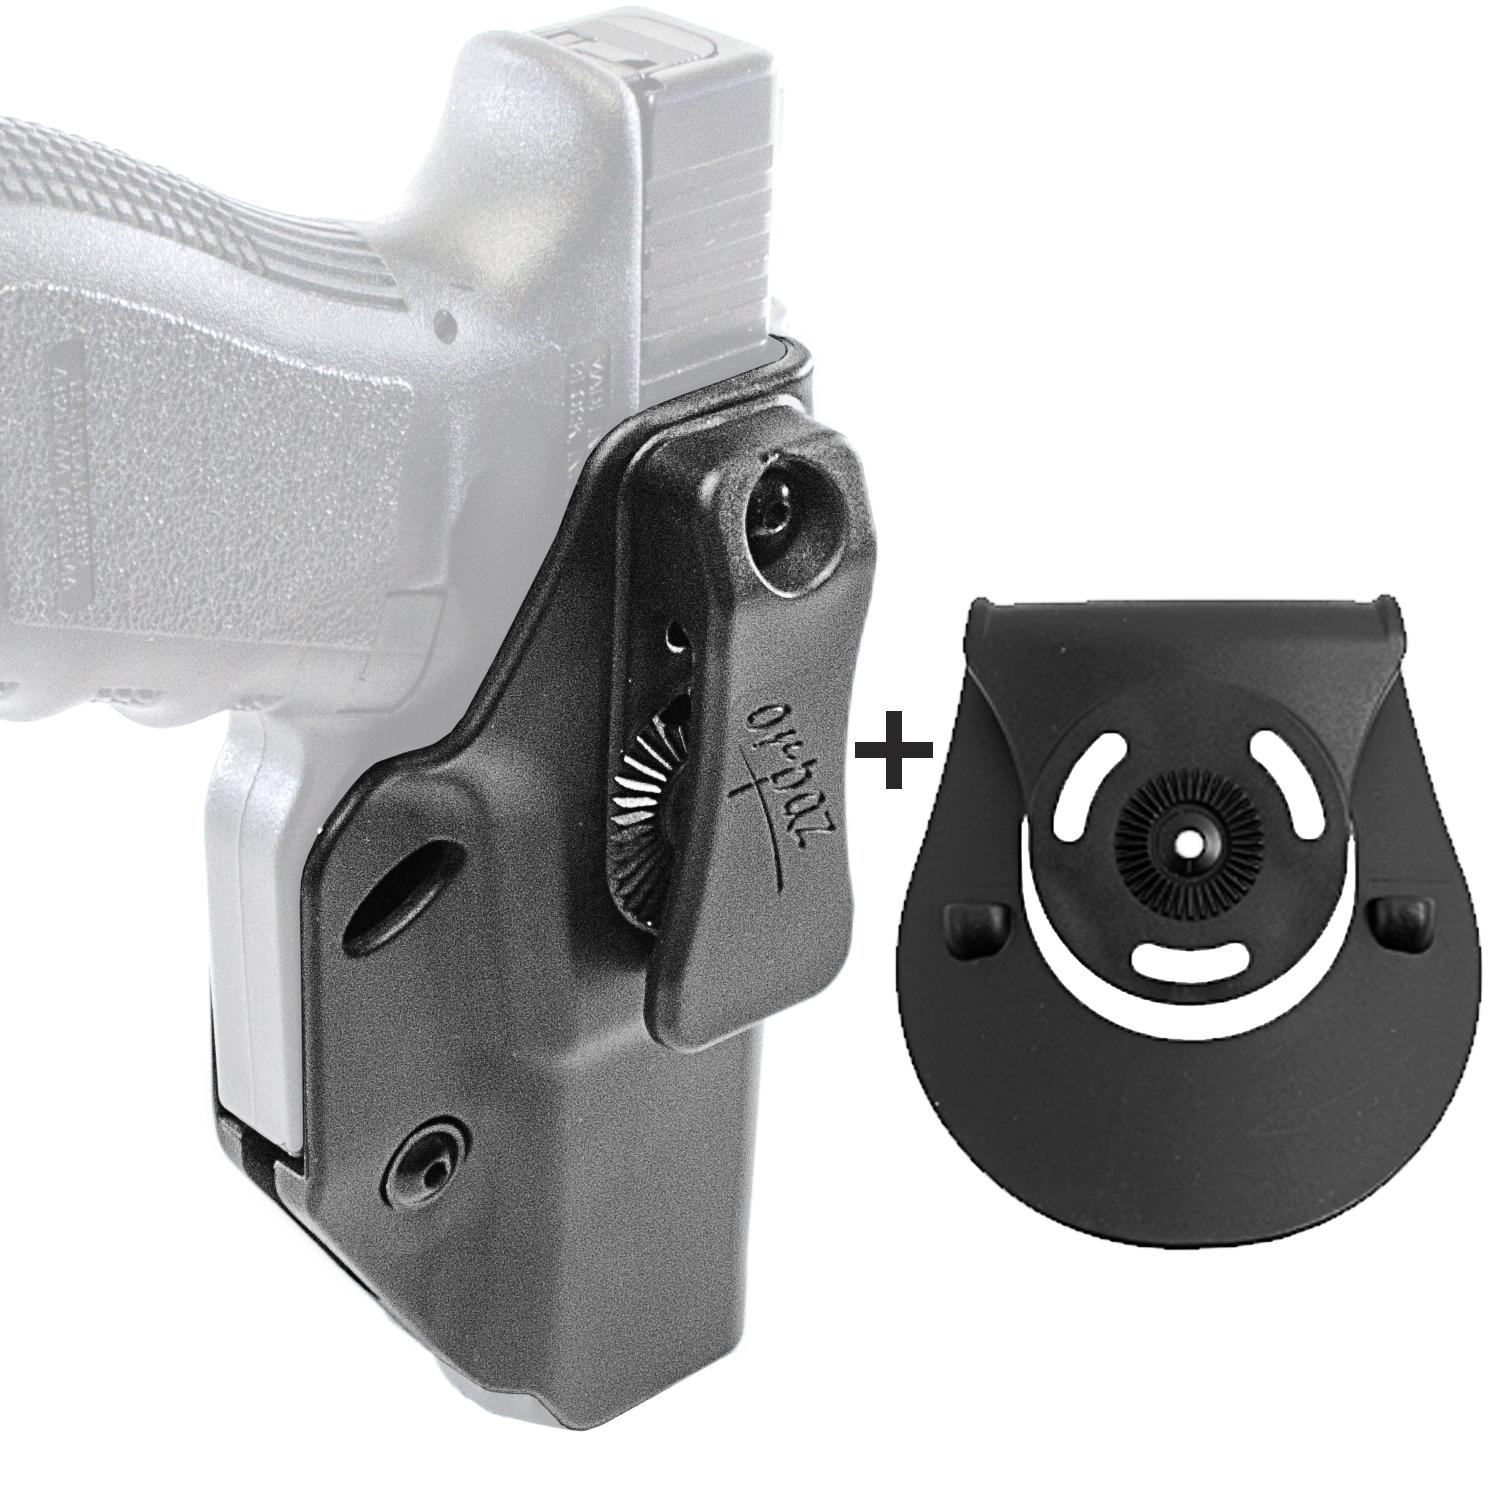 Orpaz Glock 19, 26 Concealed Carry Holster IWB Holster & OWB Paddle Attachment by Orpaz